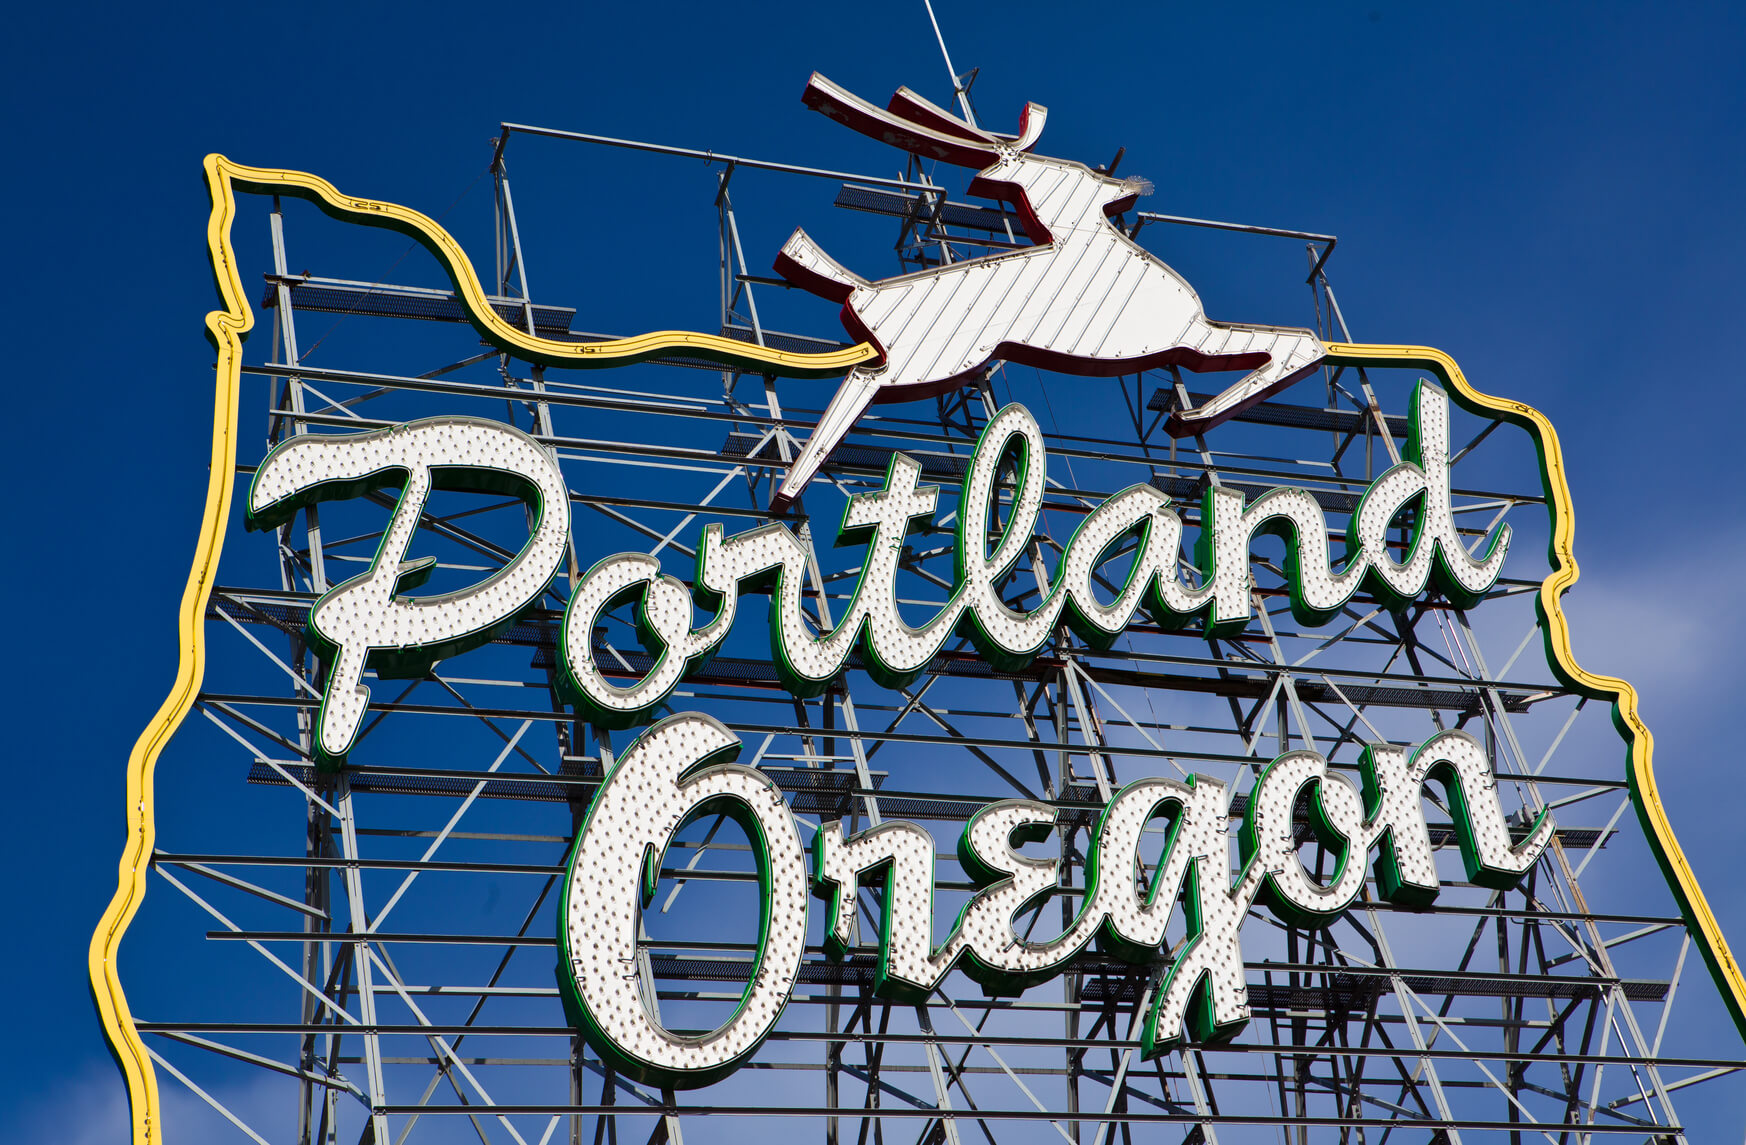 Montreal, Canada to Portland, Oregon for only $258 CAD roundtrip (Sep-Mar dates)